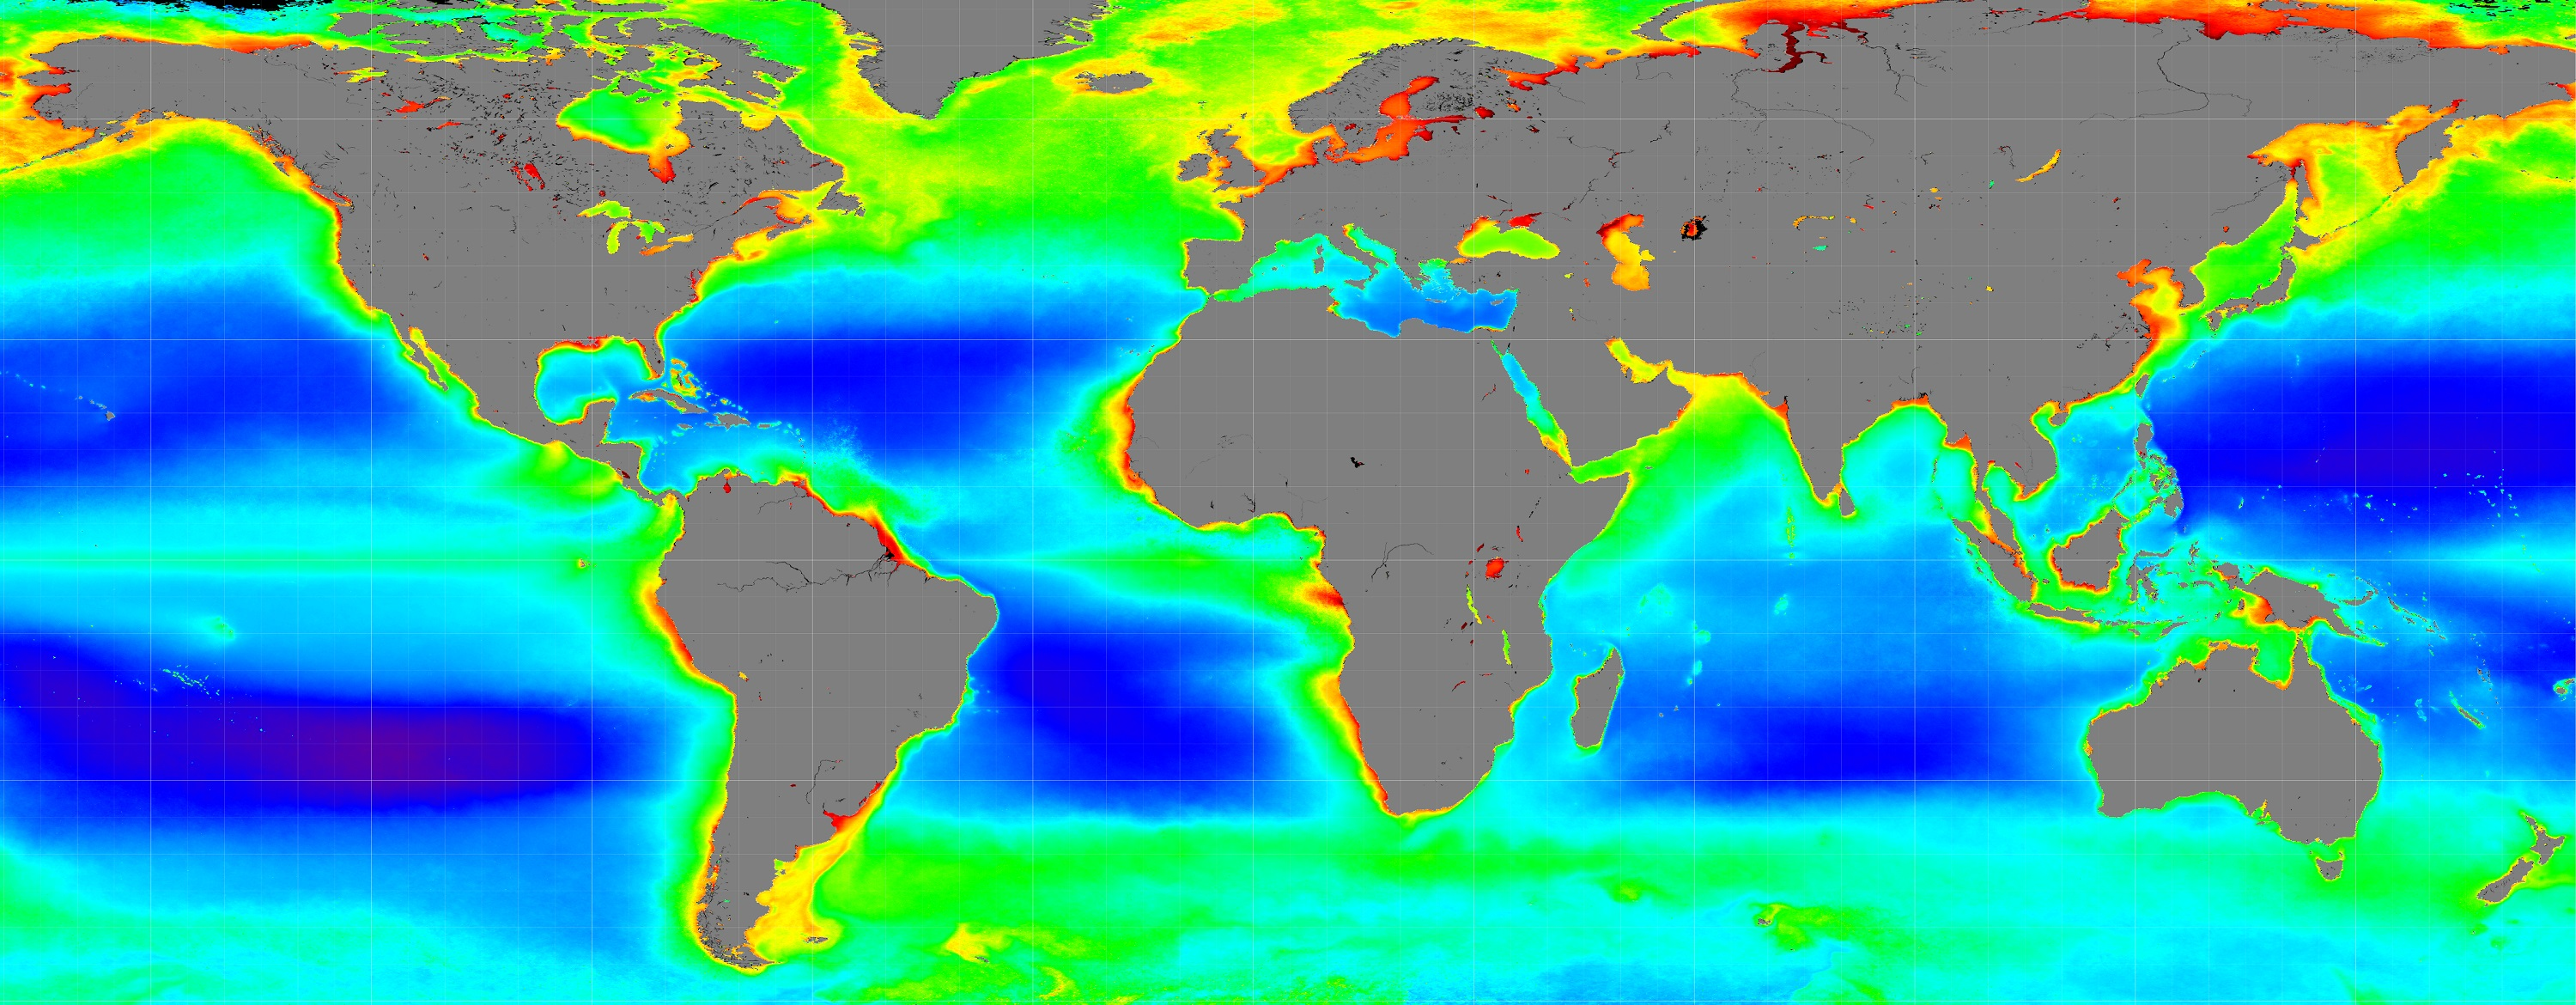 New nasa mission to study ocean color airborne particles and clouds global ocean color observations from data gathered by nasas pace spacecraft gumiabroncs